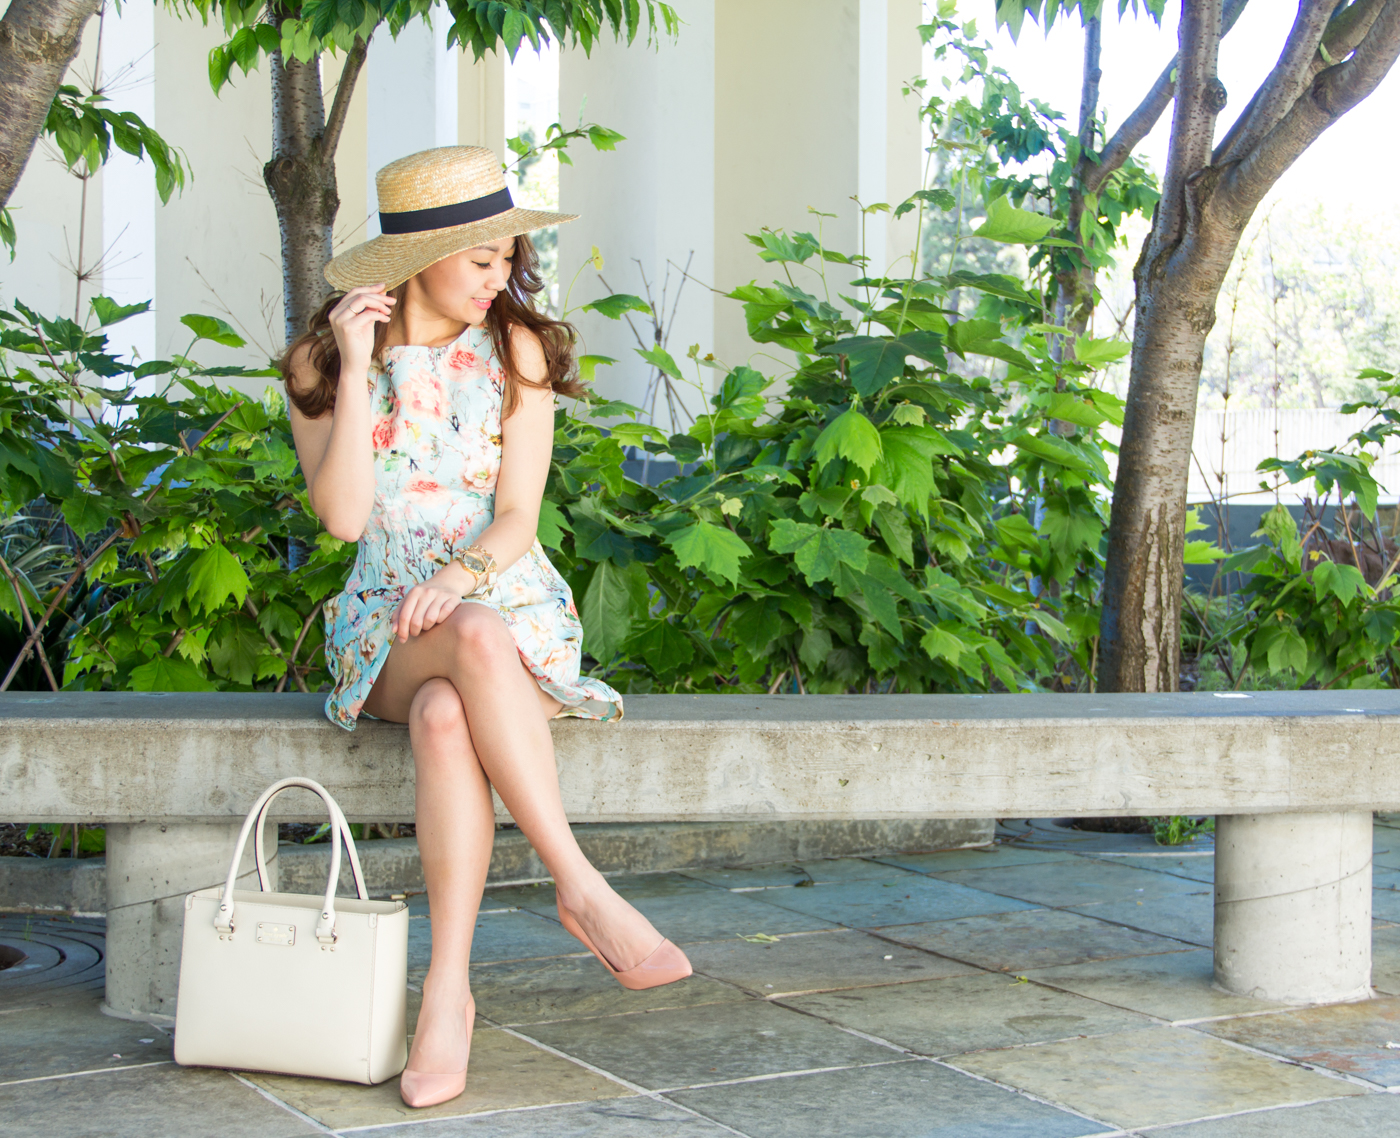 Soft pinks, blues, and neutrals | via The Chic Diary